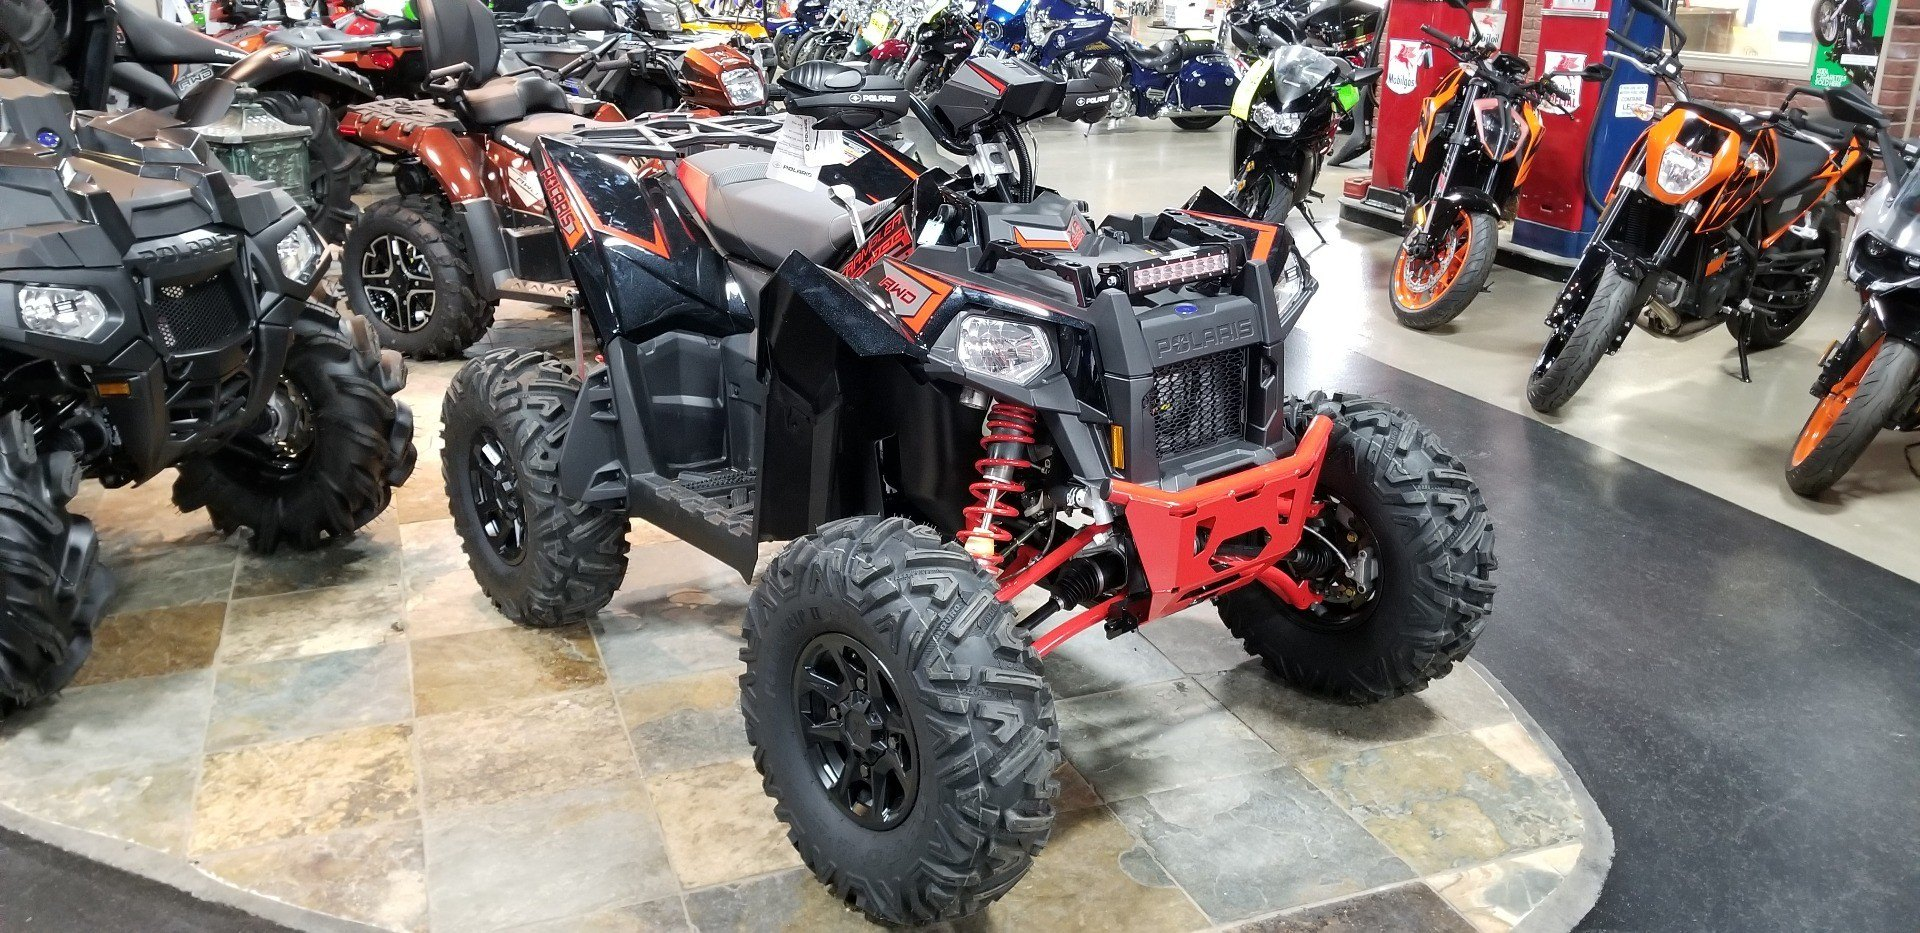 2020 Polaris Scrambler XP 1000 S in Dimondale, Michigan - Photo 2